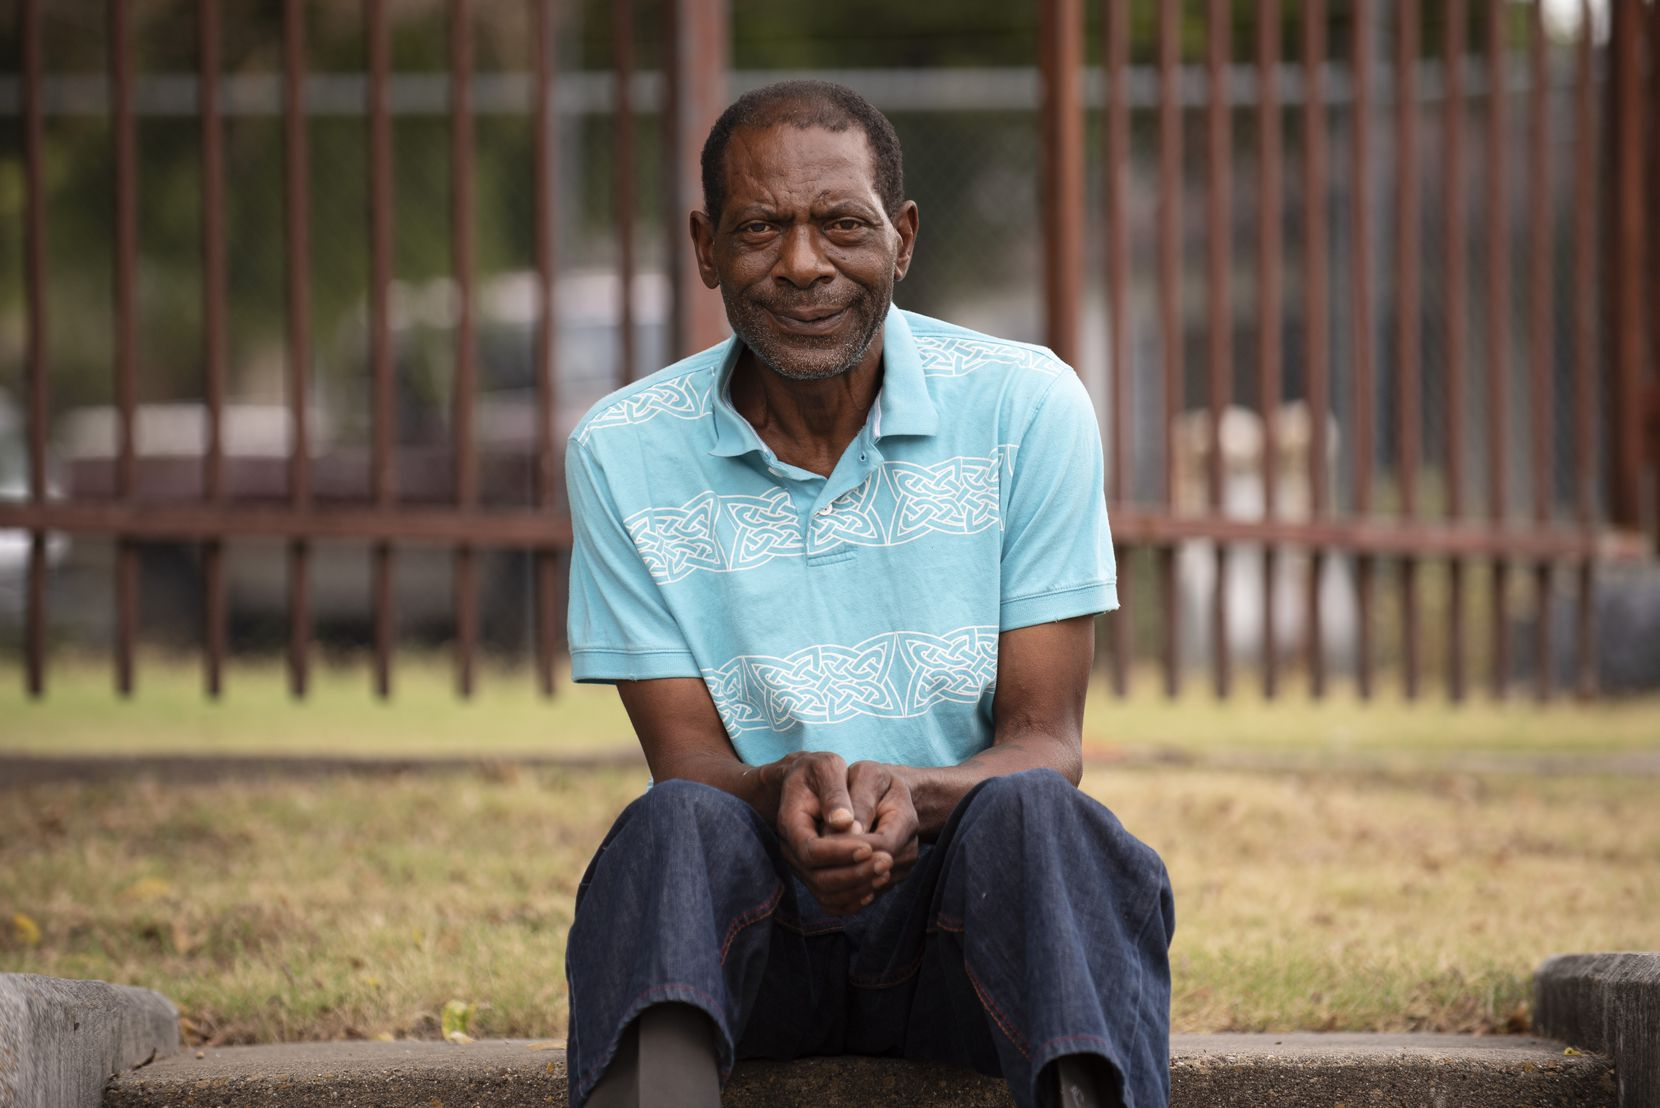 Otho Jones, a MetroCare client, was photographed outside the Lancaster clinic Aug. 26. Jones was homeless when he was picked up by the RIGHT Care team. Since then, Jones receives daily check-ins with his caseworker and has gotten back on his feet. Ben Torres/Special Contributor